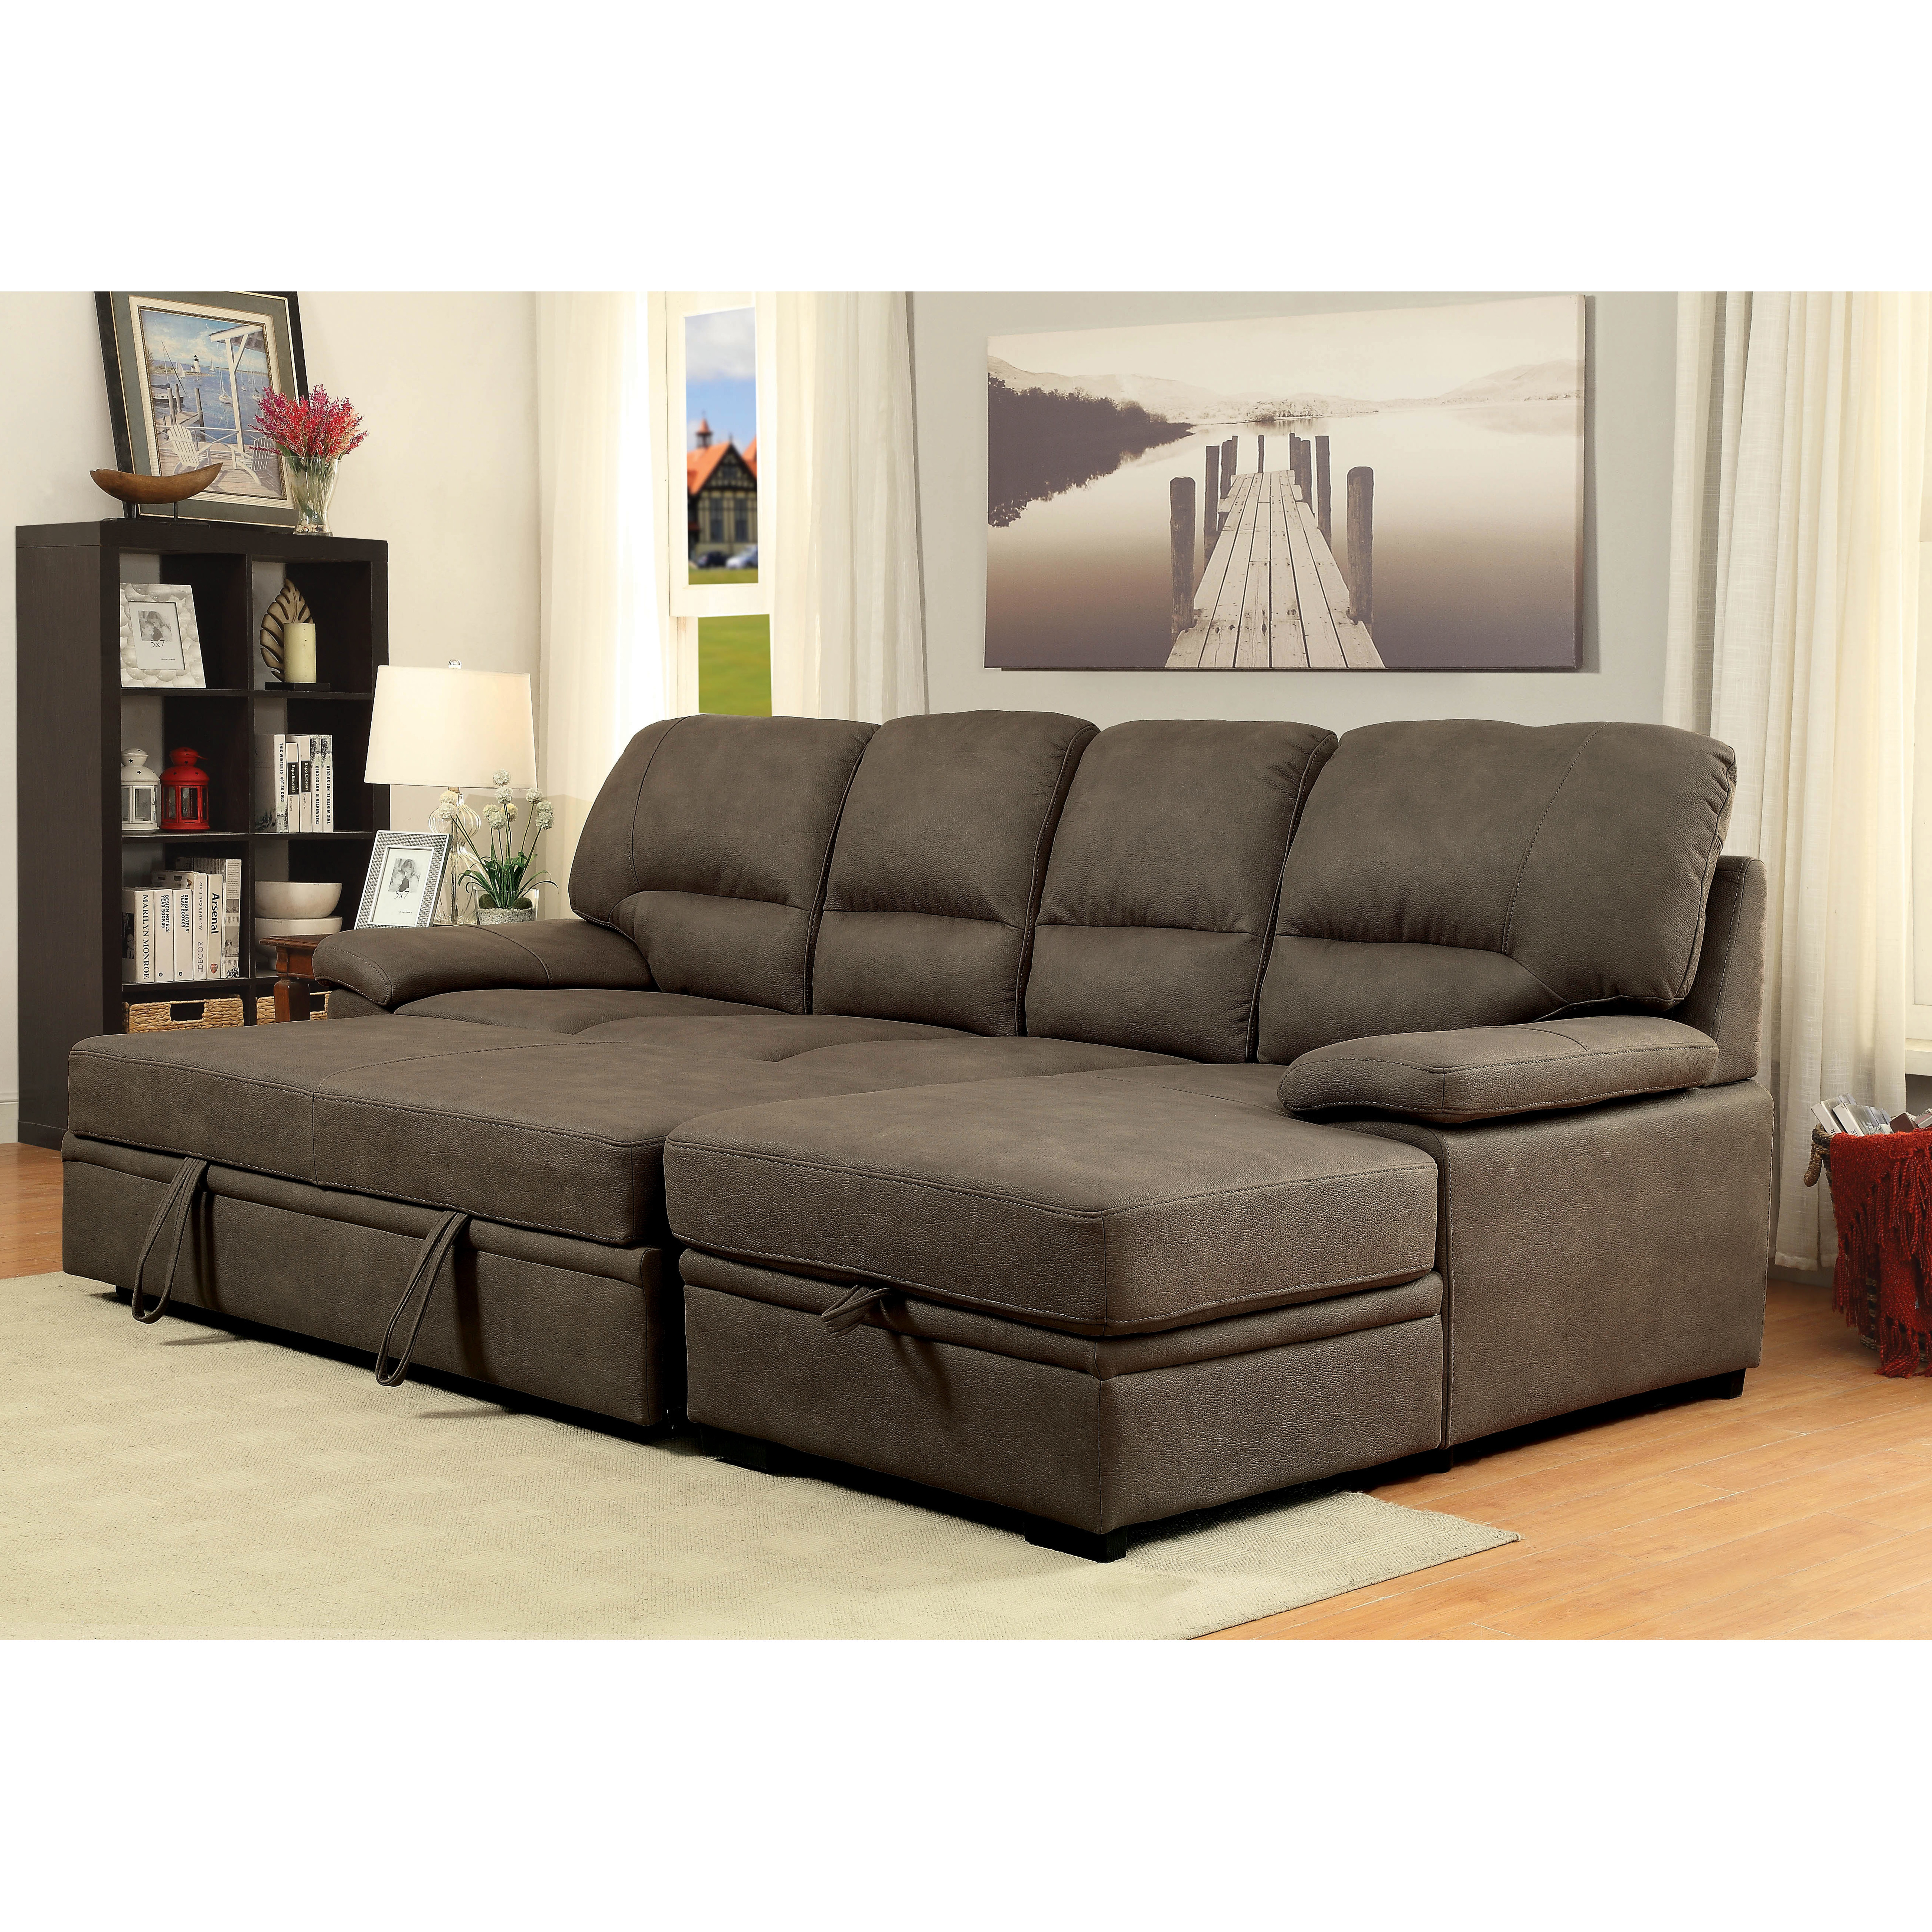 Best ideas about Discount Sleep Sofa . Save or Pin Cheap Sectional Sleeper Sofa Cleanupflorida Now.